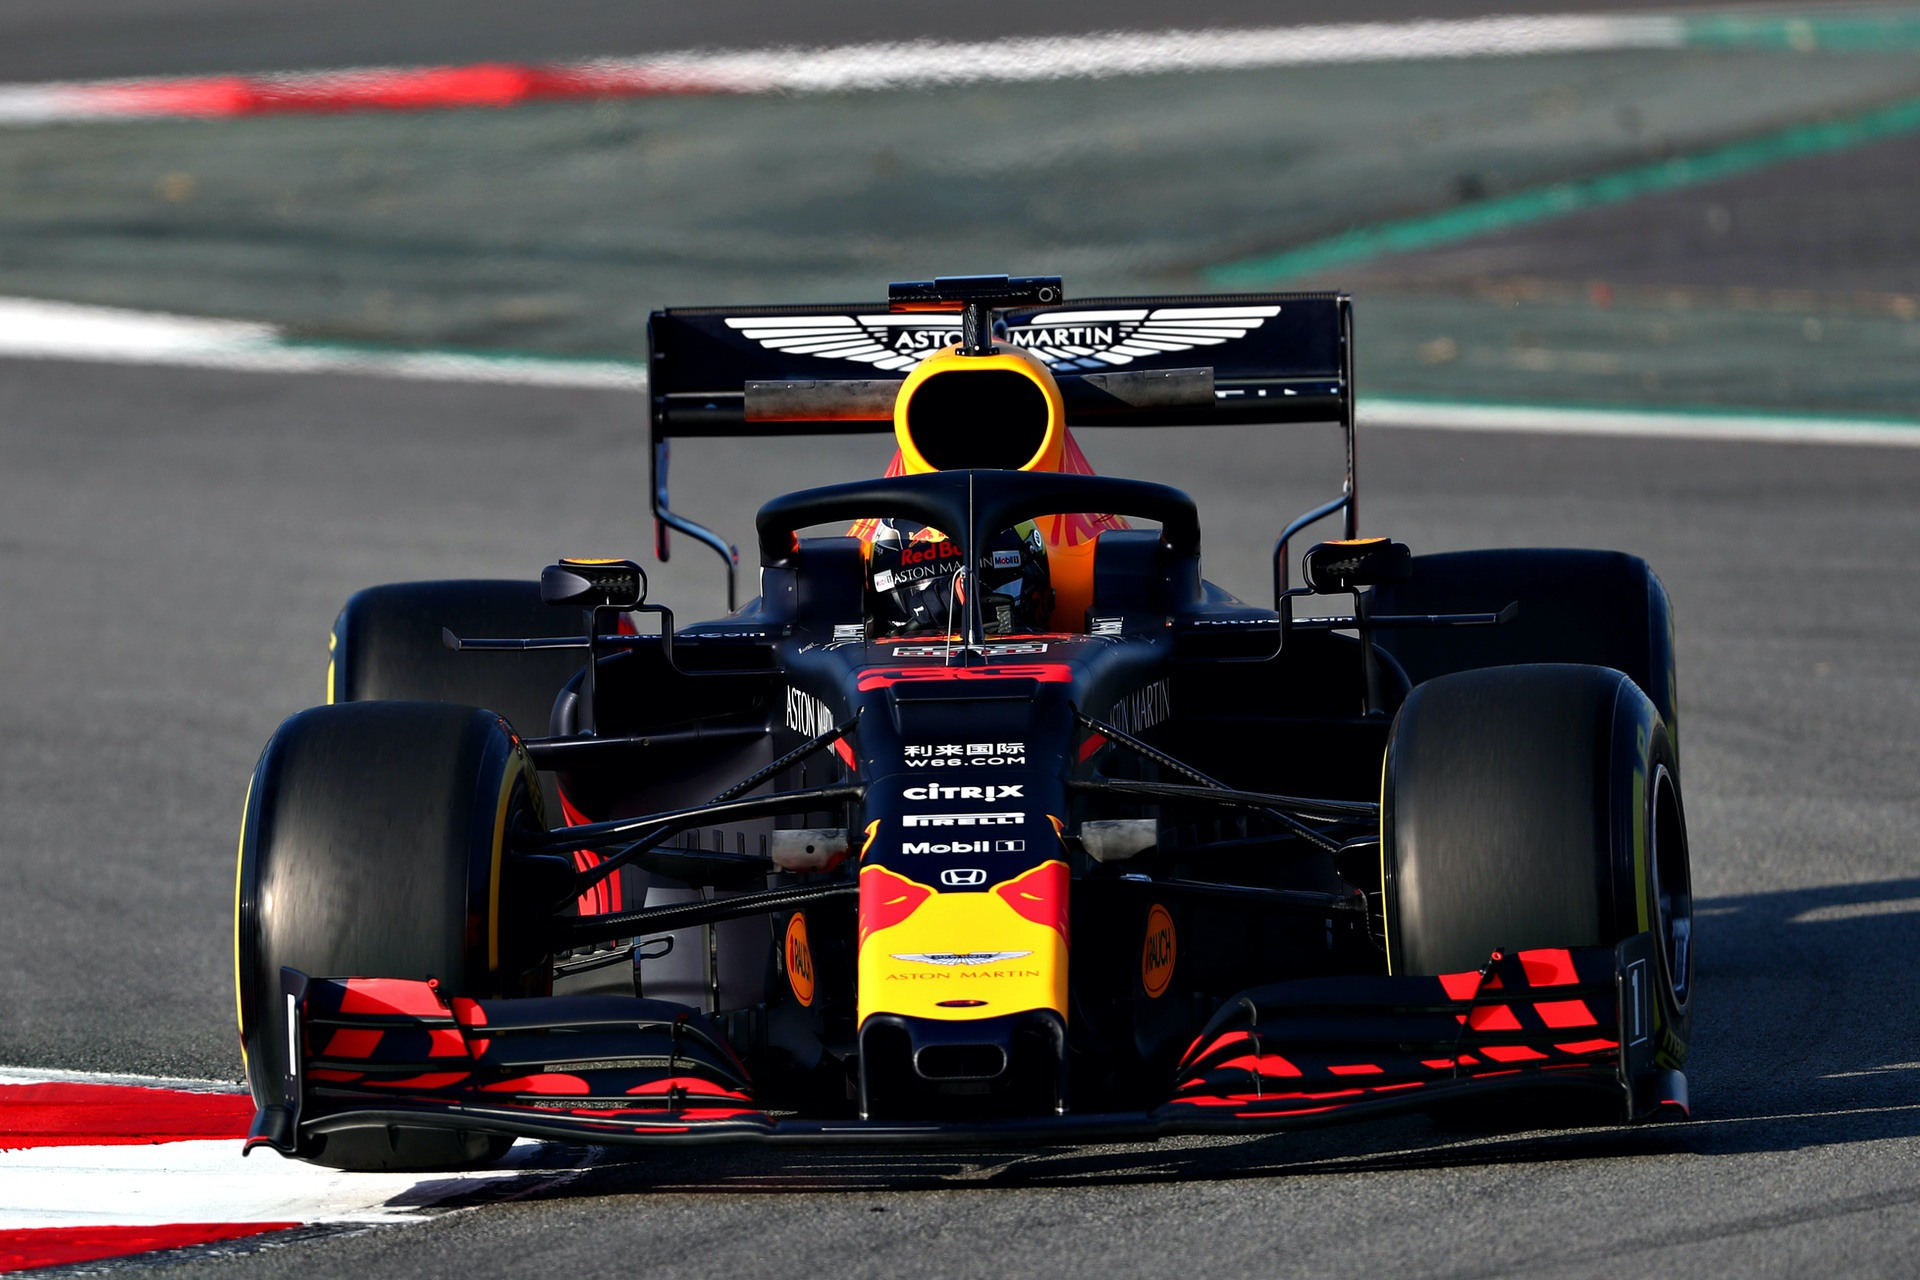 MONTMELO, SPAIN - FEBRUARY 18: Max Verstappen of the Netherlands driving the (33) Aston Martin Red Bull Racing RB15 on track during day one of F1 Winter Testing at Circuit de Catalunya on February 18, 2019 in Montmelo, Spain. (Photo by Dan Istitene/Getty Images) // Getty Images / Red Bull Content Pool  // AP-1YFQGD5J91W11 // Usage for editorial use only // Please go to www.redbullcontentpool.com for further information. //